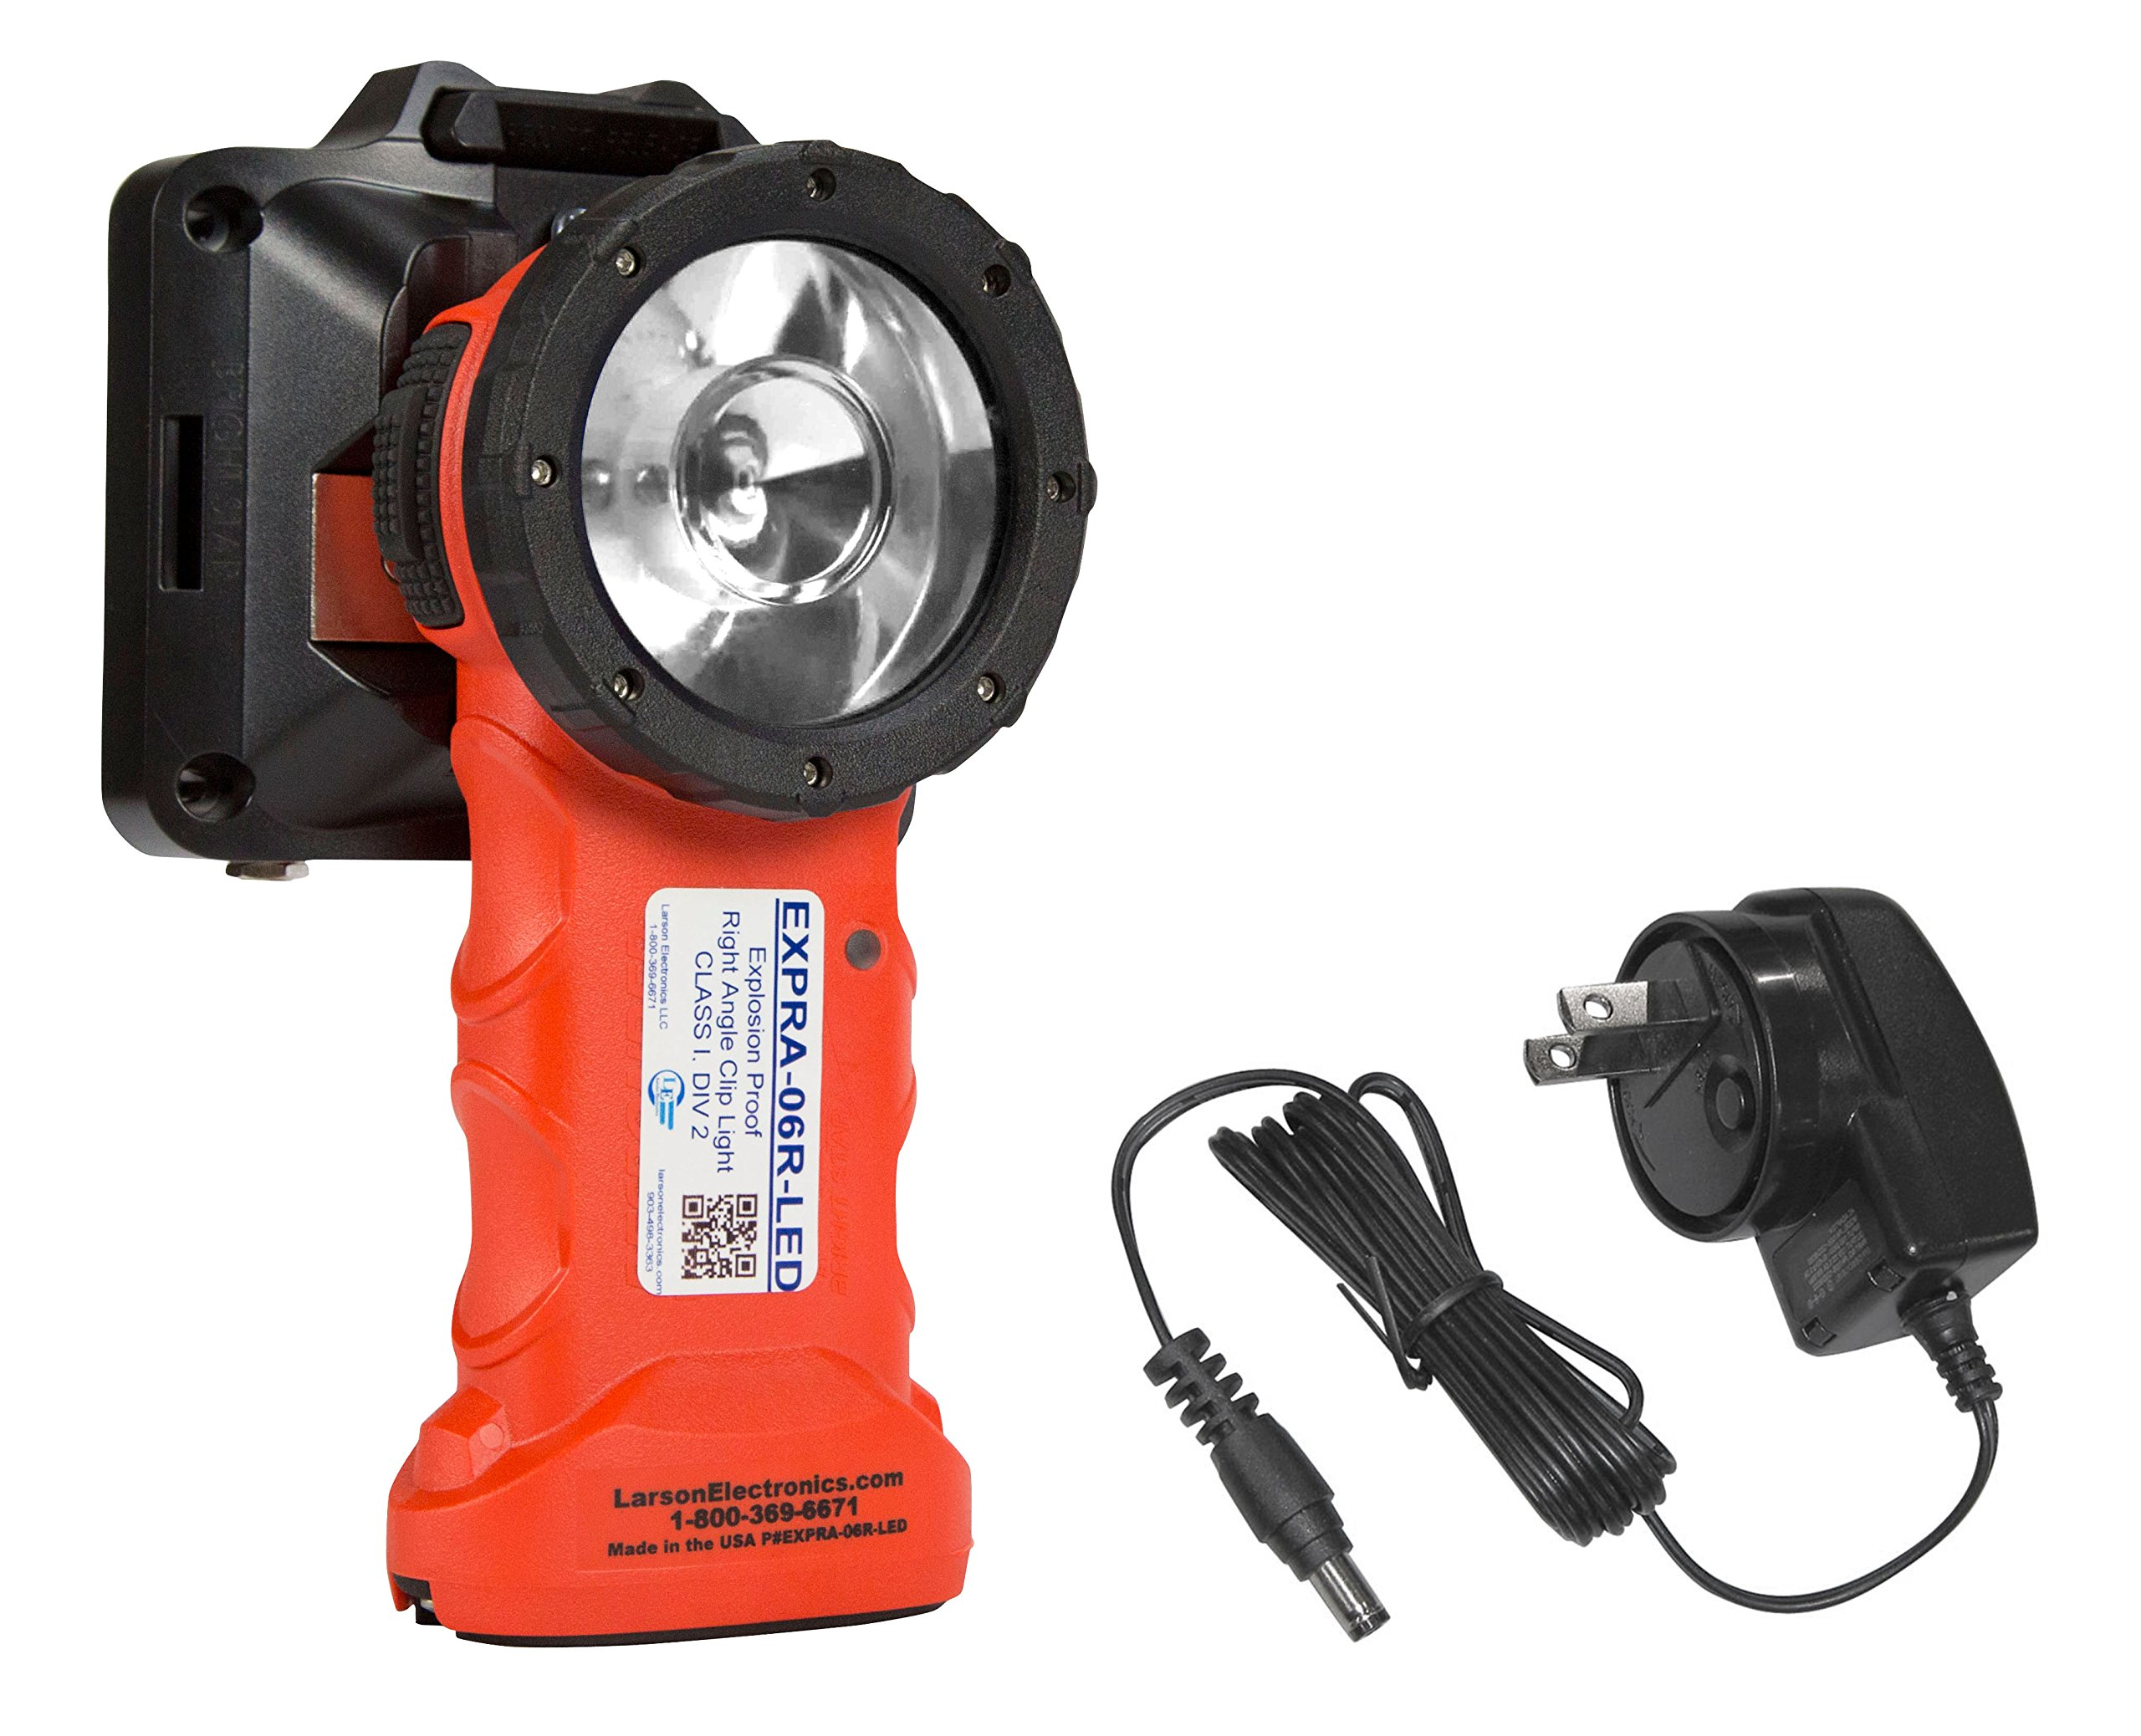 Rechargeable Explosion Proof LED Right Angle Clip Light - Class 1 Div 1 Groups C & D - Made in USA